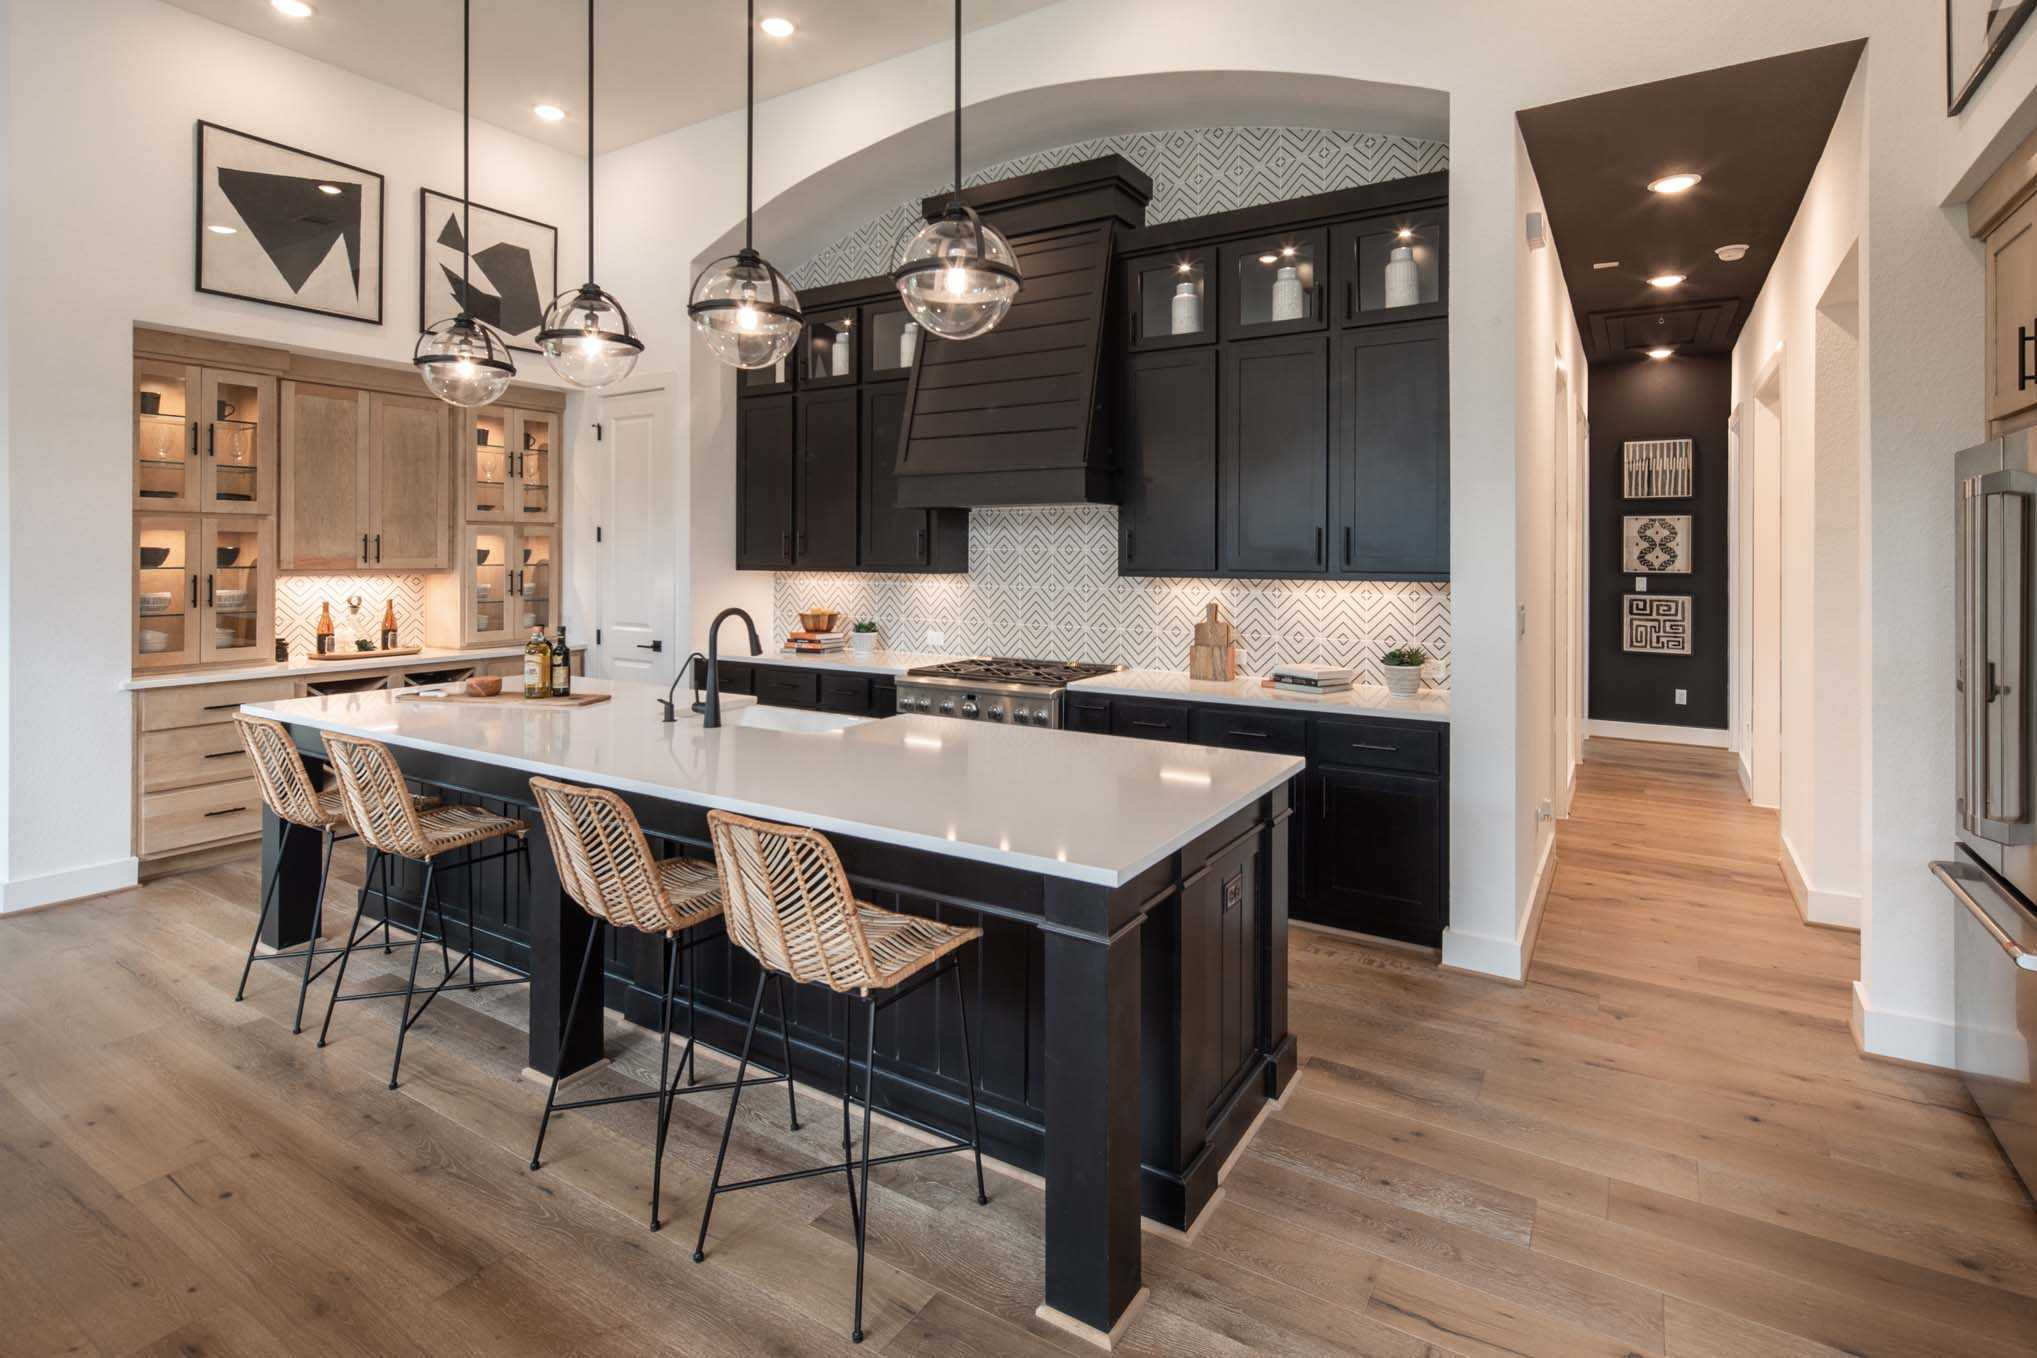 Kitchen featured in the Plan 215 By Highland Homes in San Antonio, TX